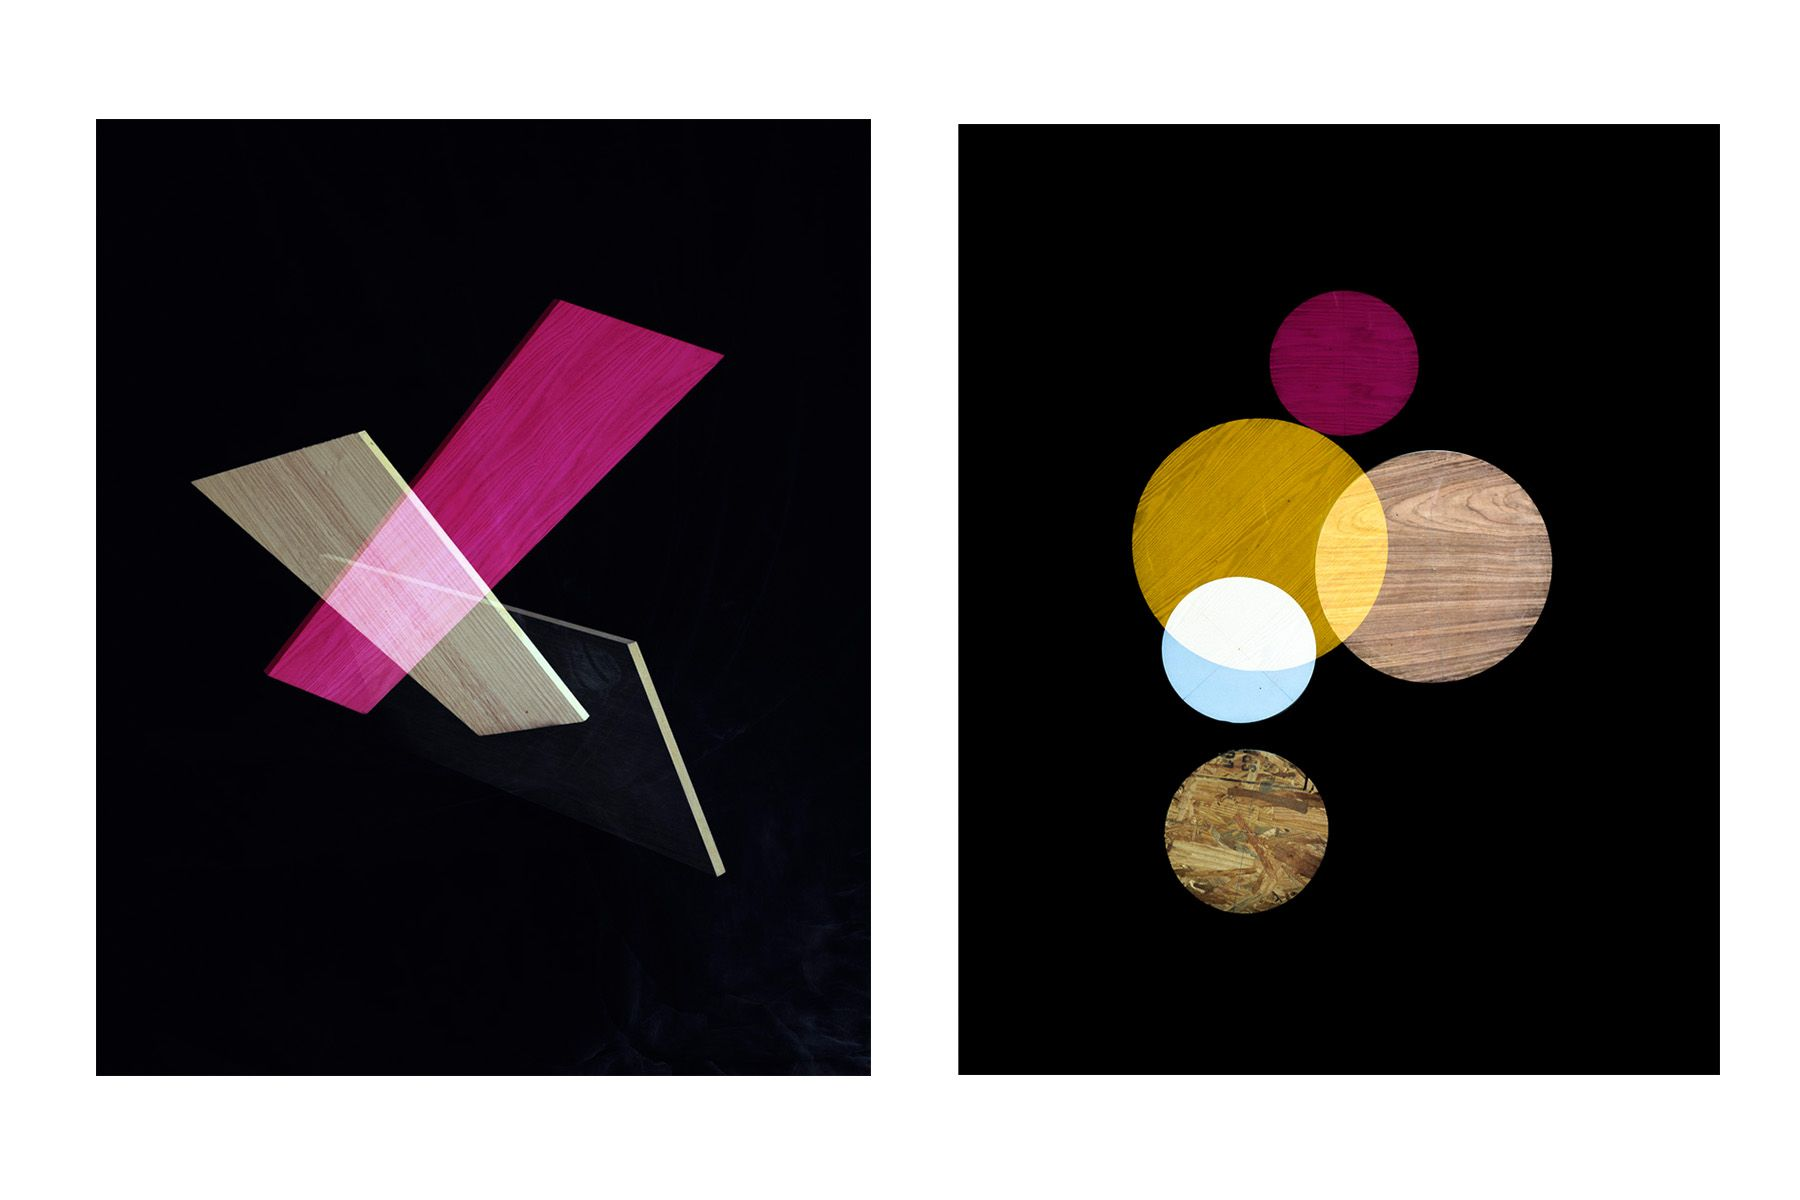 Magenta, 2014 (left) ; Pink, Yellow, White Circles, 2014 (right)